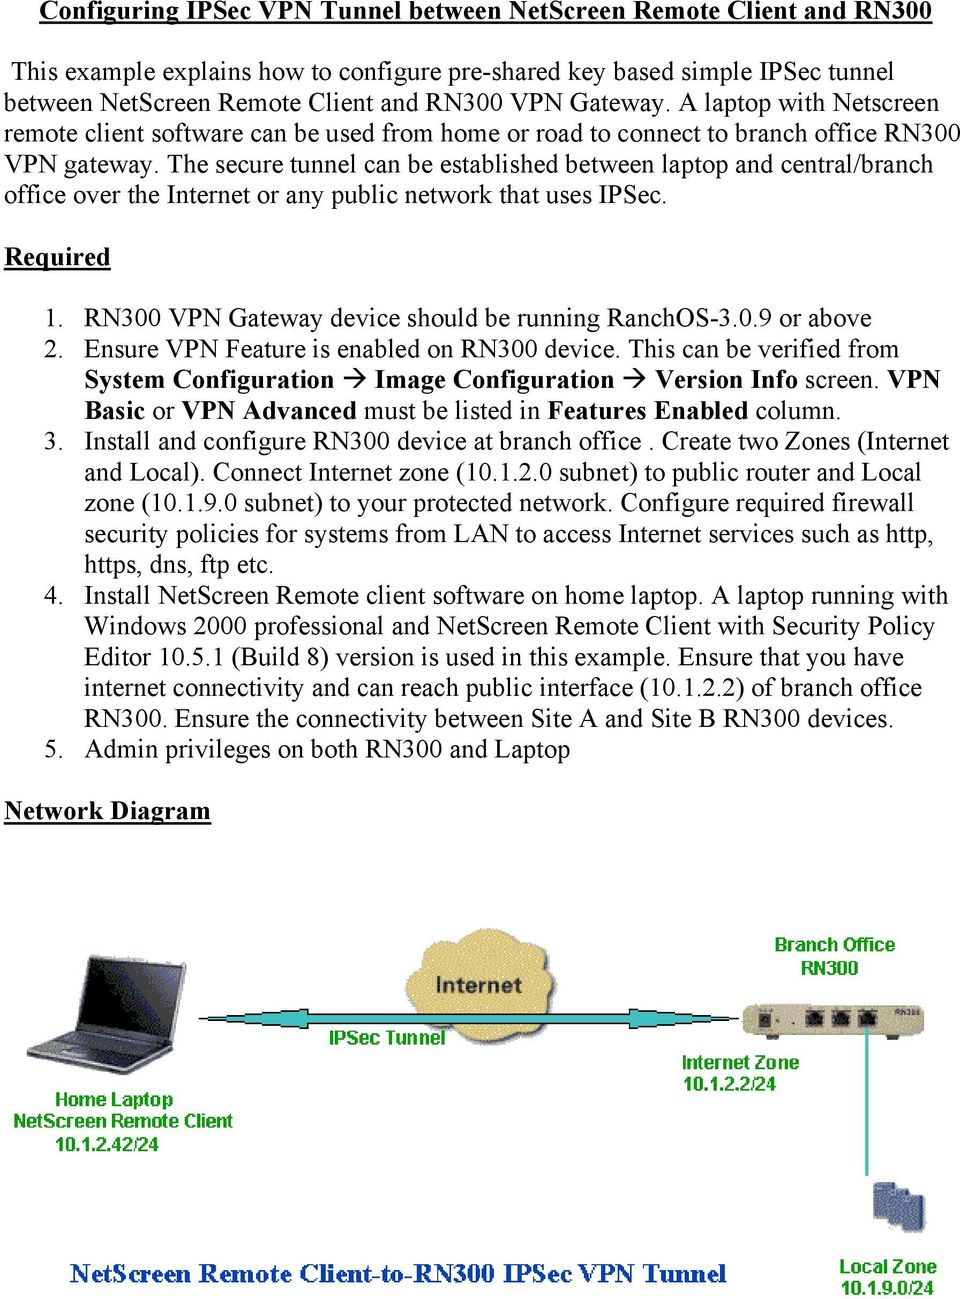 The secure tunnel can be established between laptop and central/branch office over the Internet or any public network that uses IPSec. Required 1. RN300 VPN Gateway device should be running RanchOS-3.